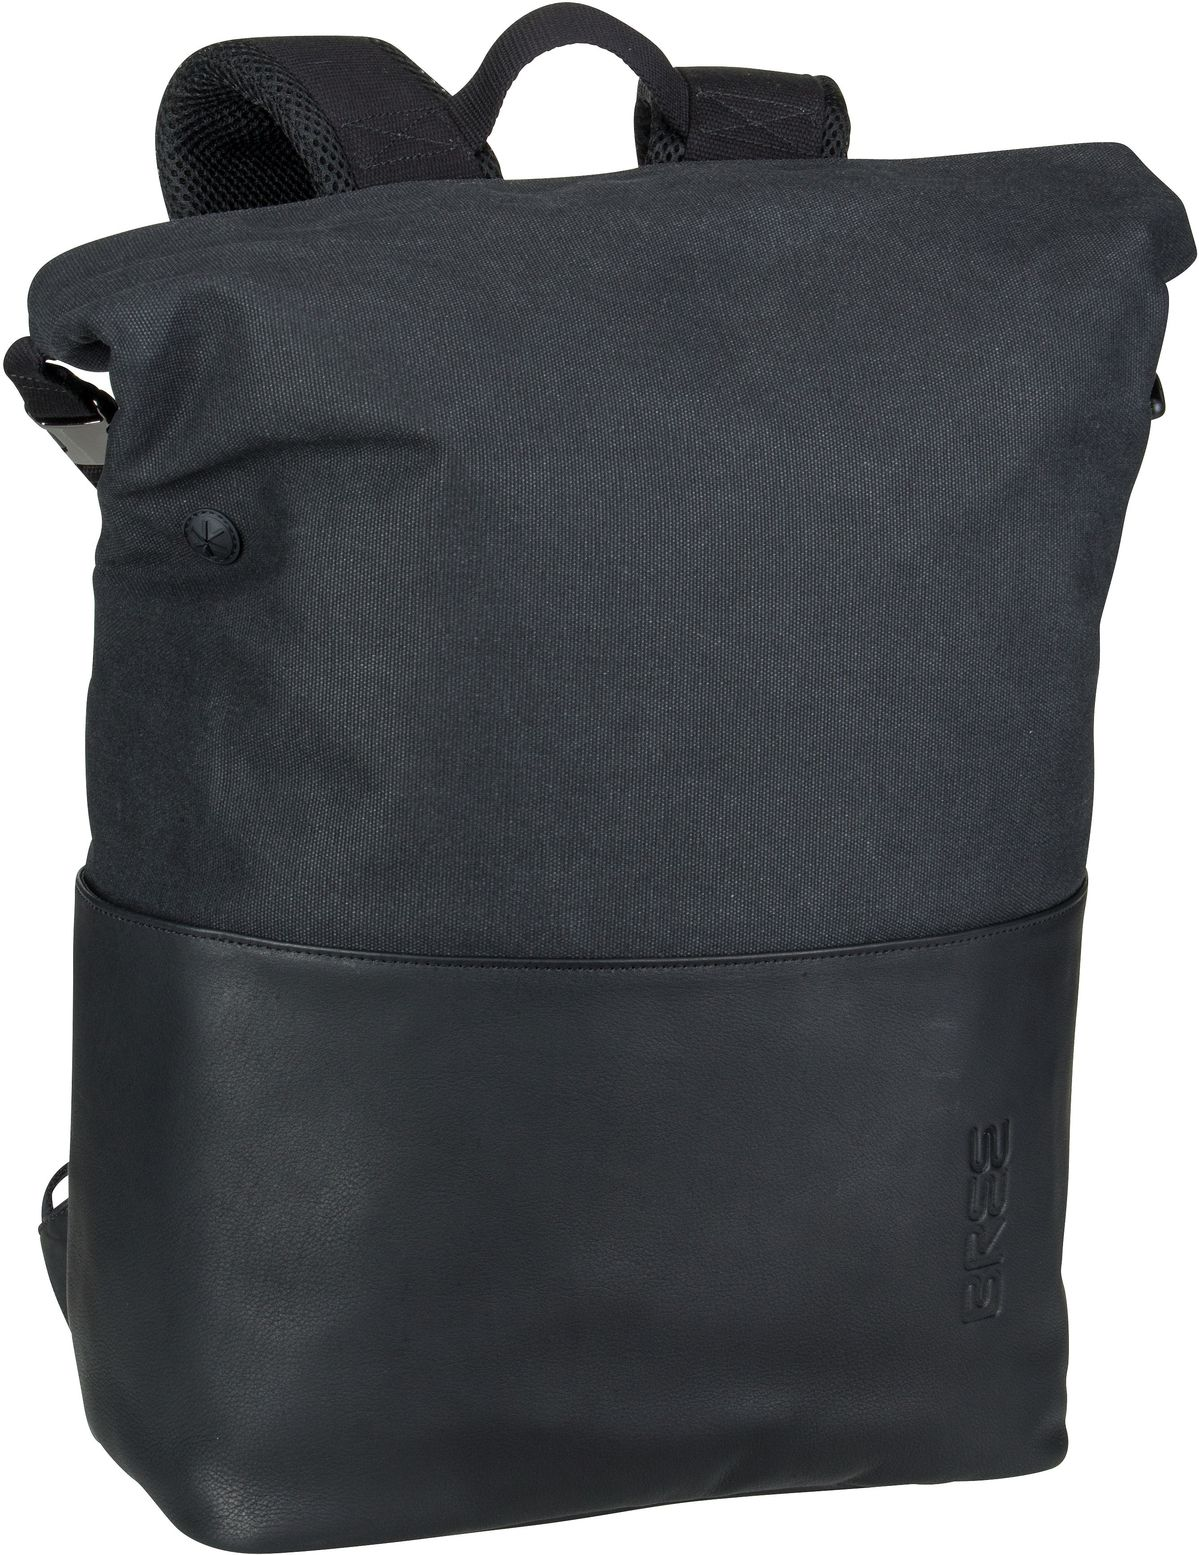 Rucksack / Daypack Punch Casual 733 Anthra/Black